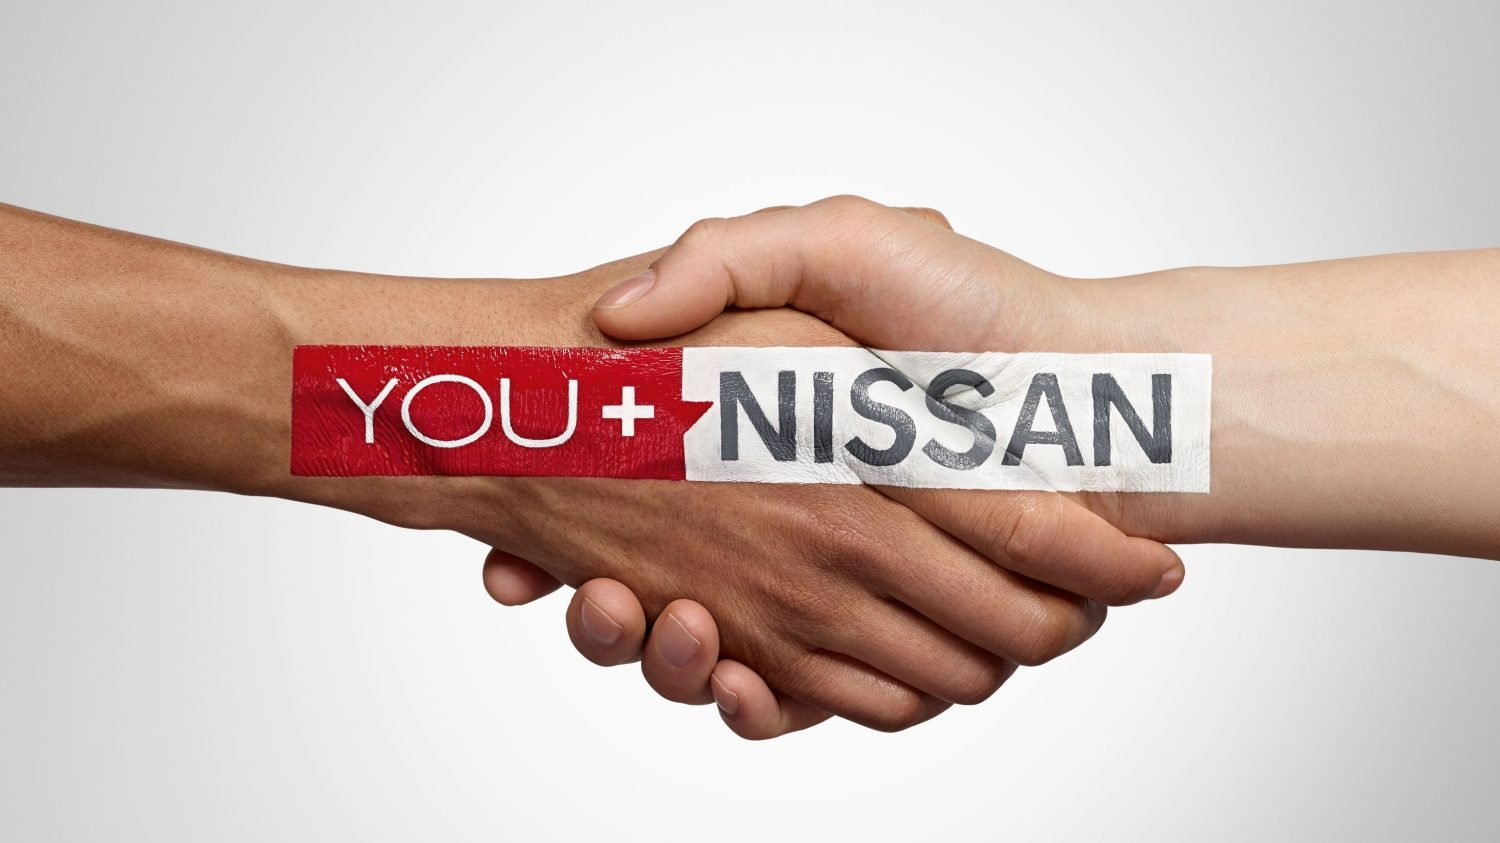 NISSAN - Clienti - YOU+NISSAN